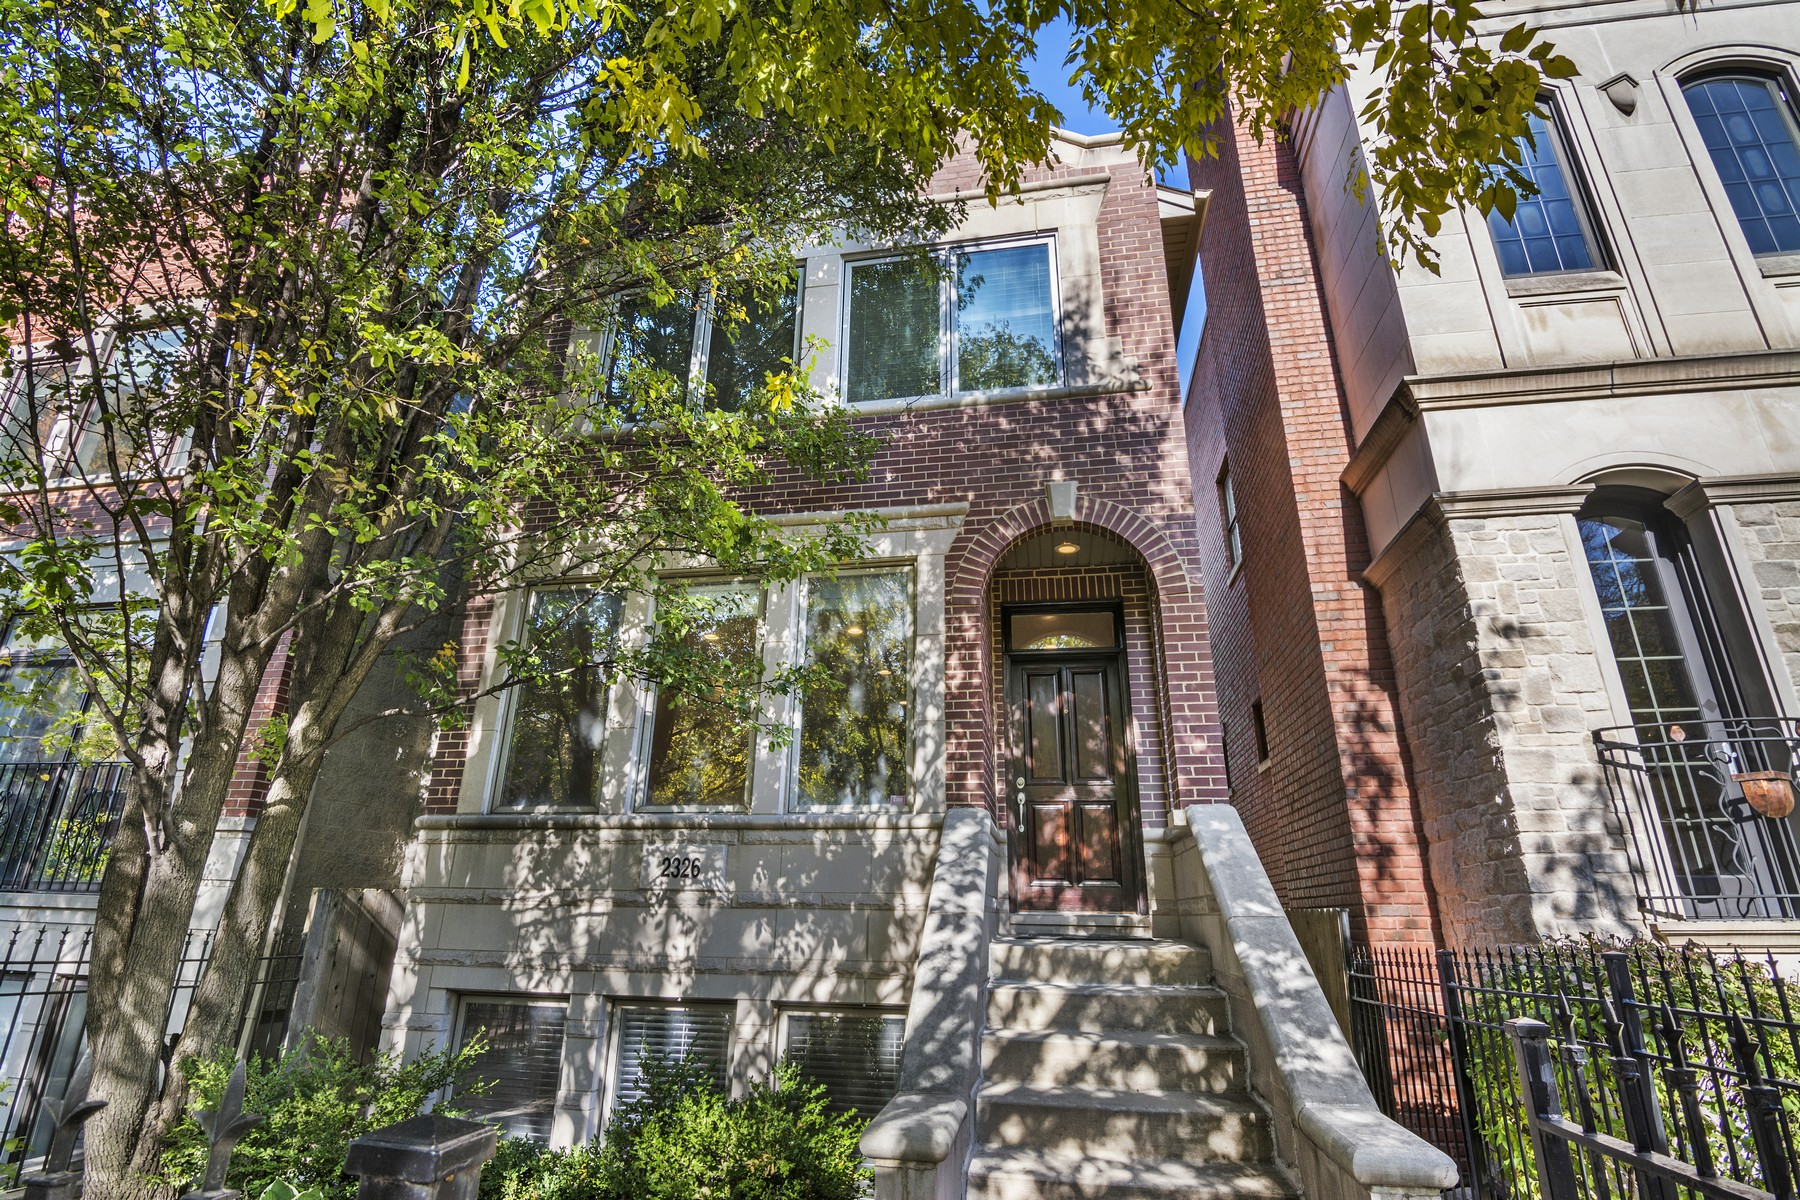 Single Family Home for Sale at 2326 W Charleston St 2326 W Charleston Street, Logan Square, Chicago, Illinois, 60647 United States